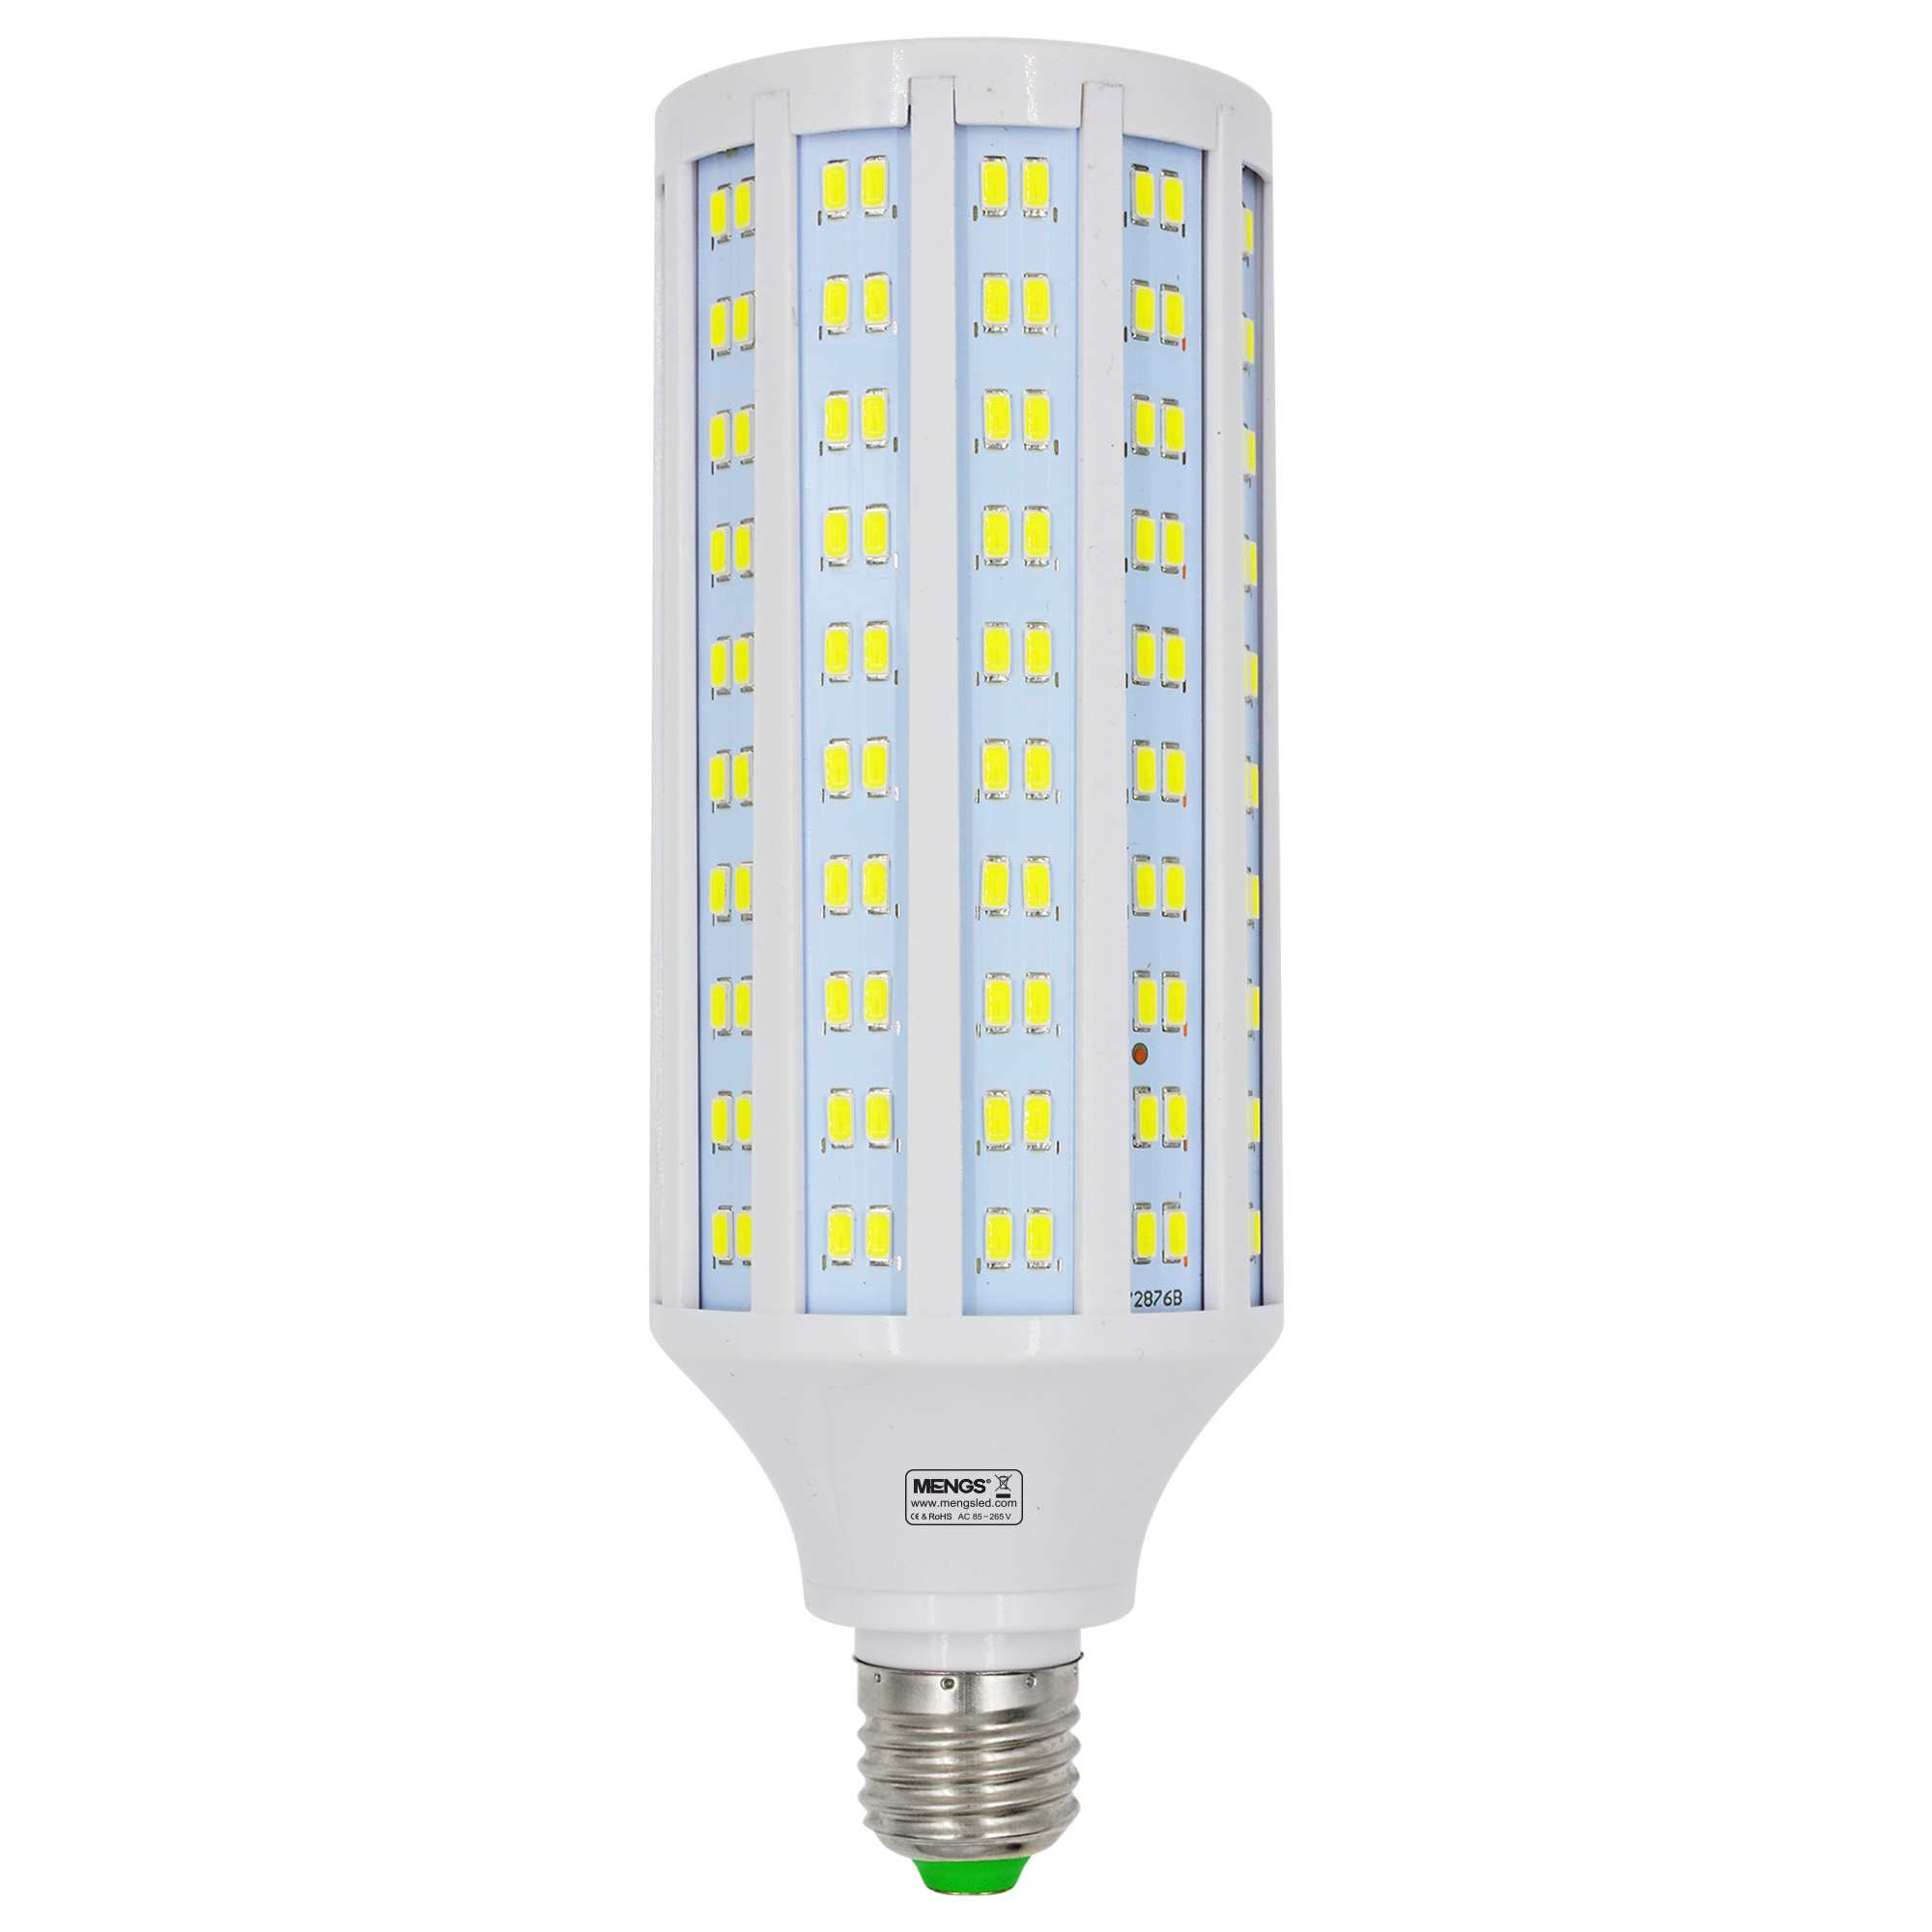 MENGS® E27 40W  LED Corn Light 280x 5730 SMD LED Bulb Lamp AC 85-265V in Cool White Energy-Saving Light